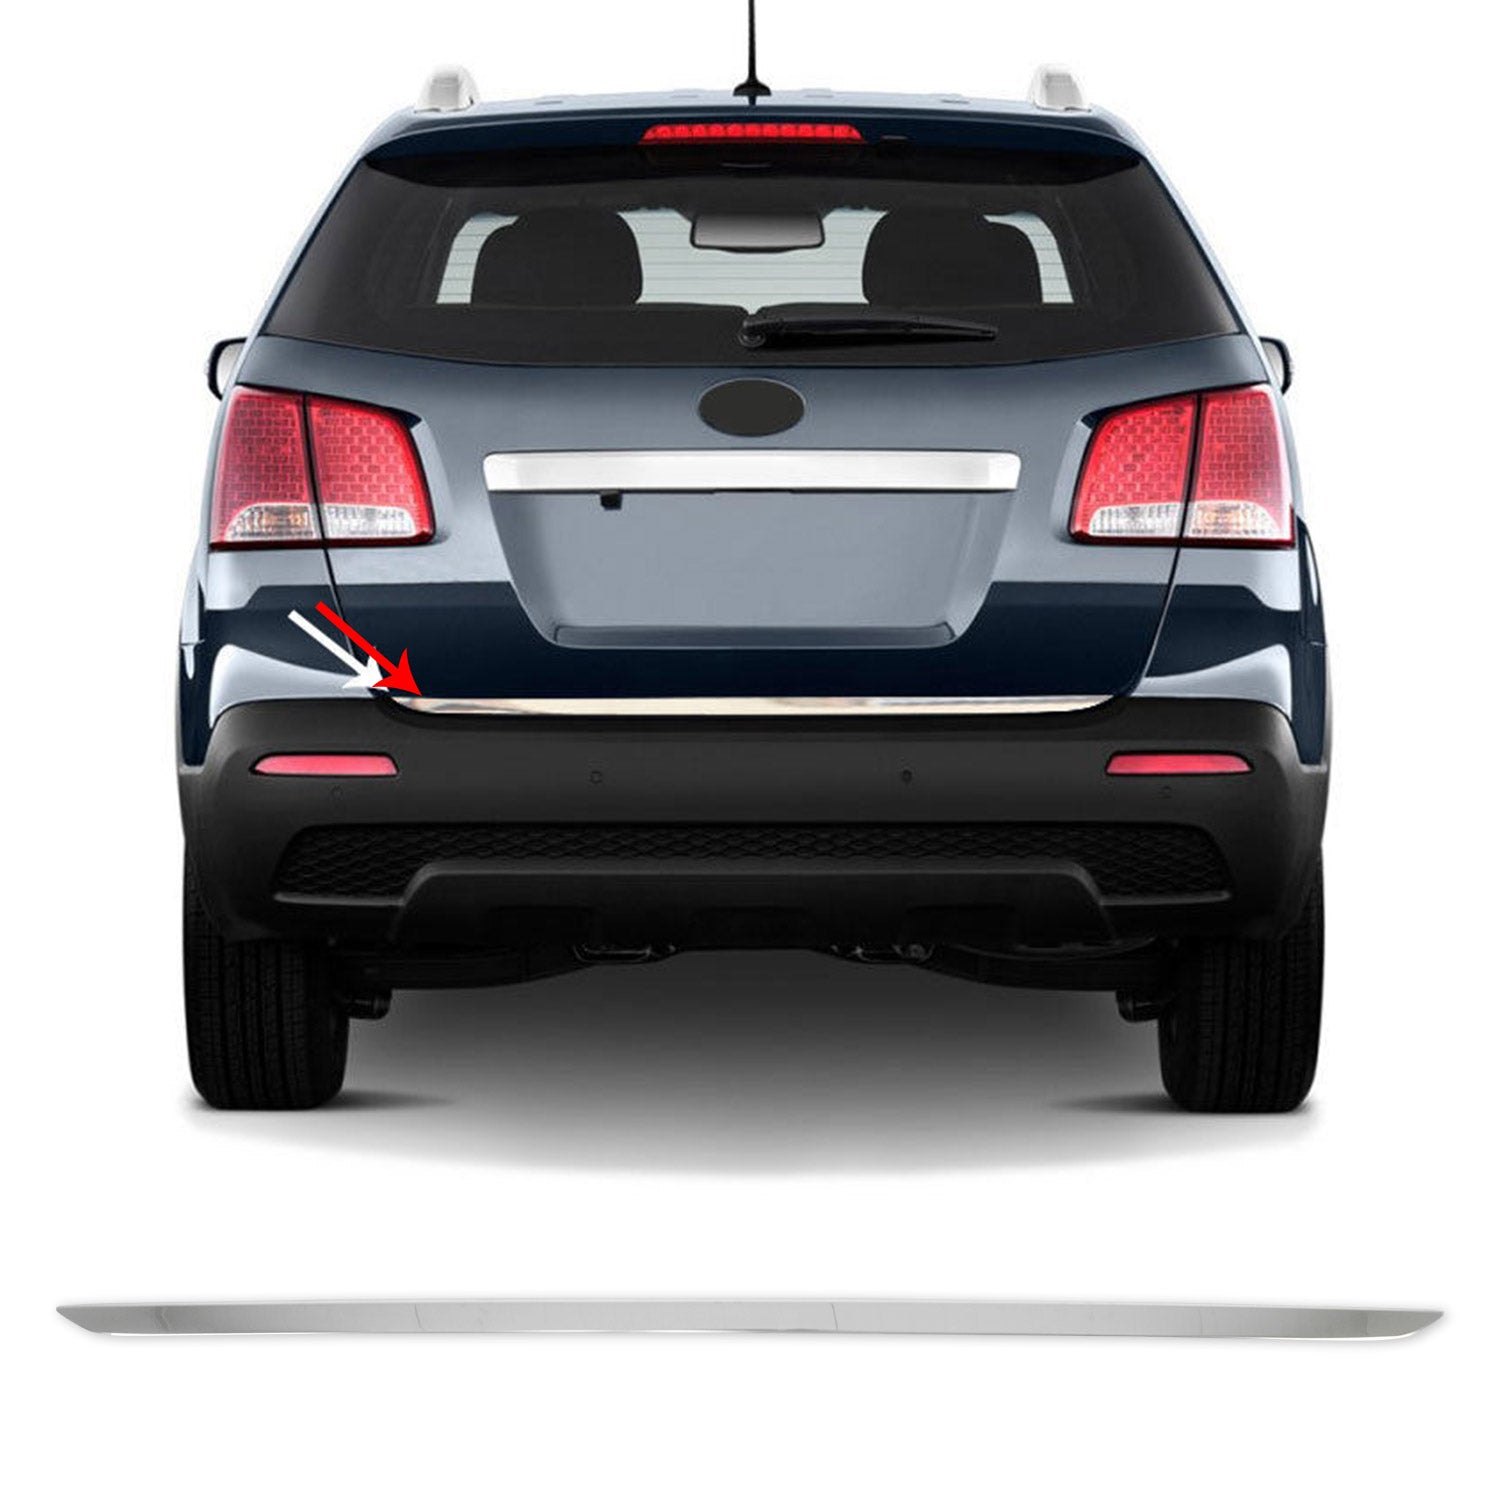 Chrome Lower Tailgate Trim Trunk Door Streamer S.Steel For Kia Sorento 2011-2013